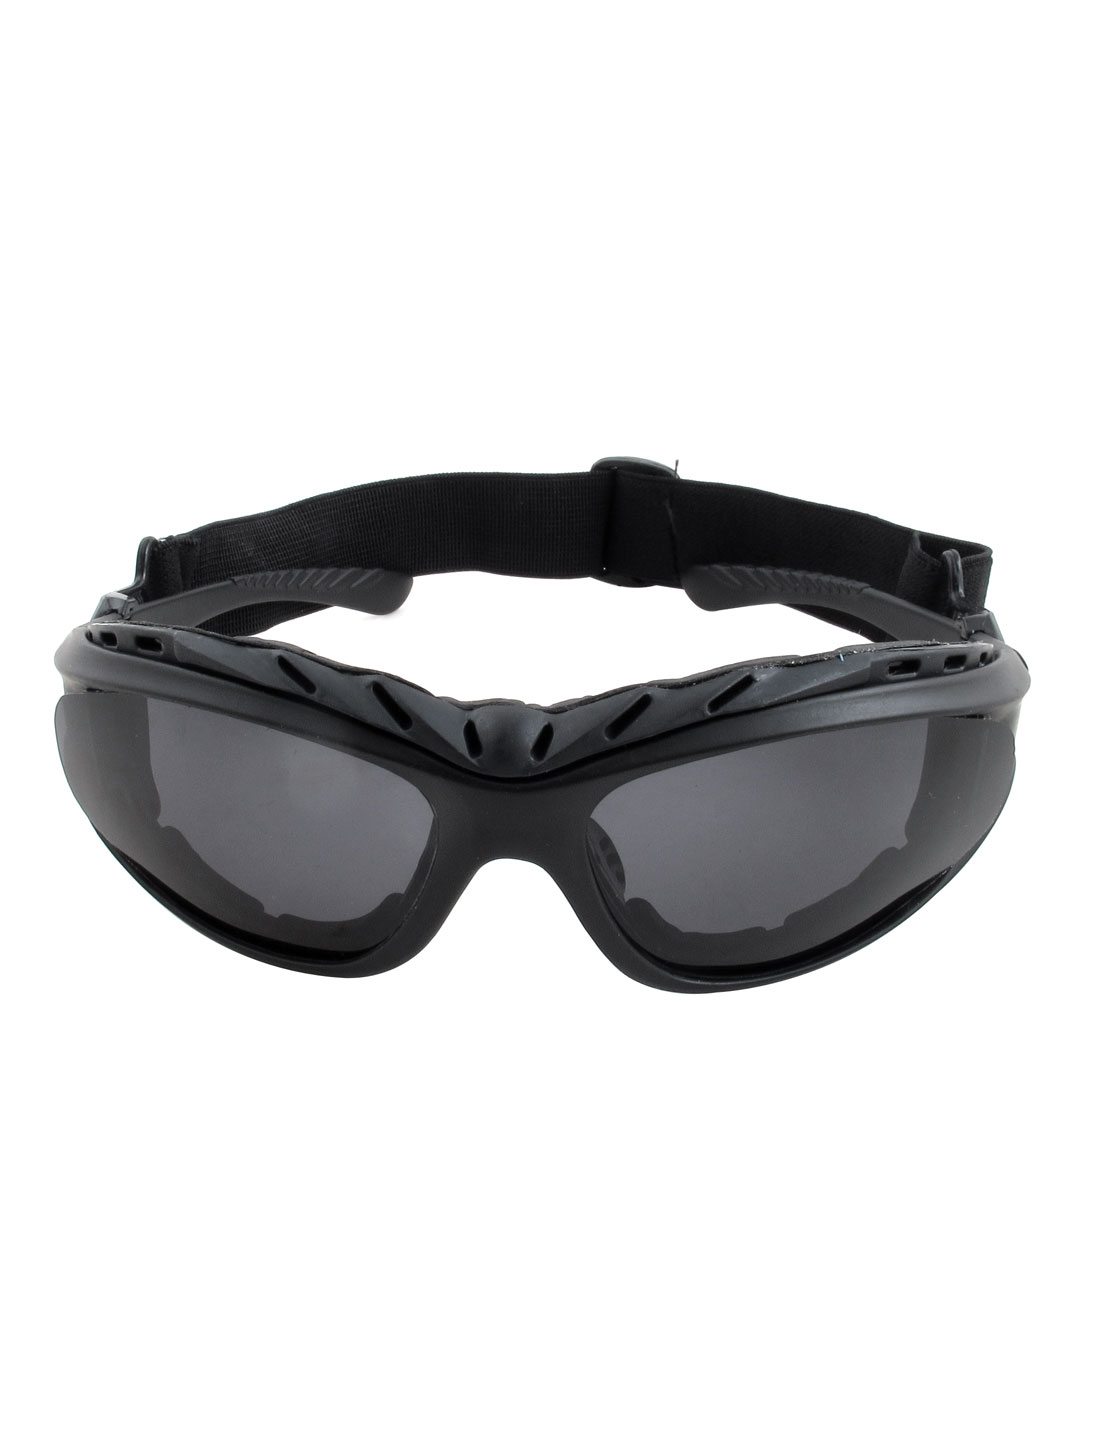 Women/'s Motorcycle Riding Glasses Padded Pink with Dark Glasses Day Time